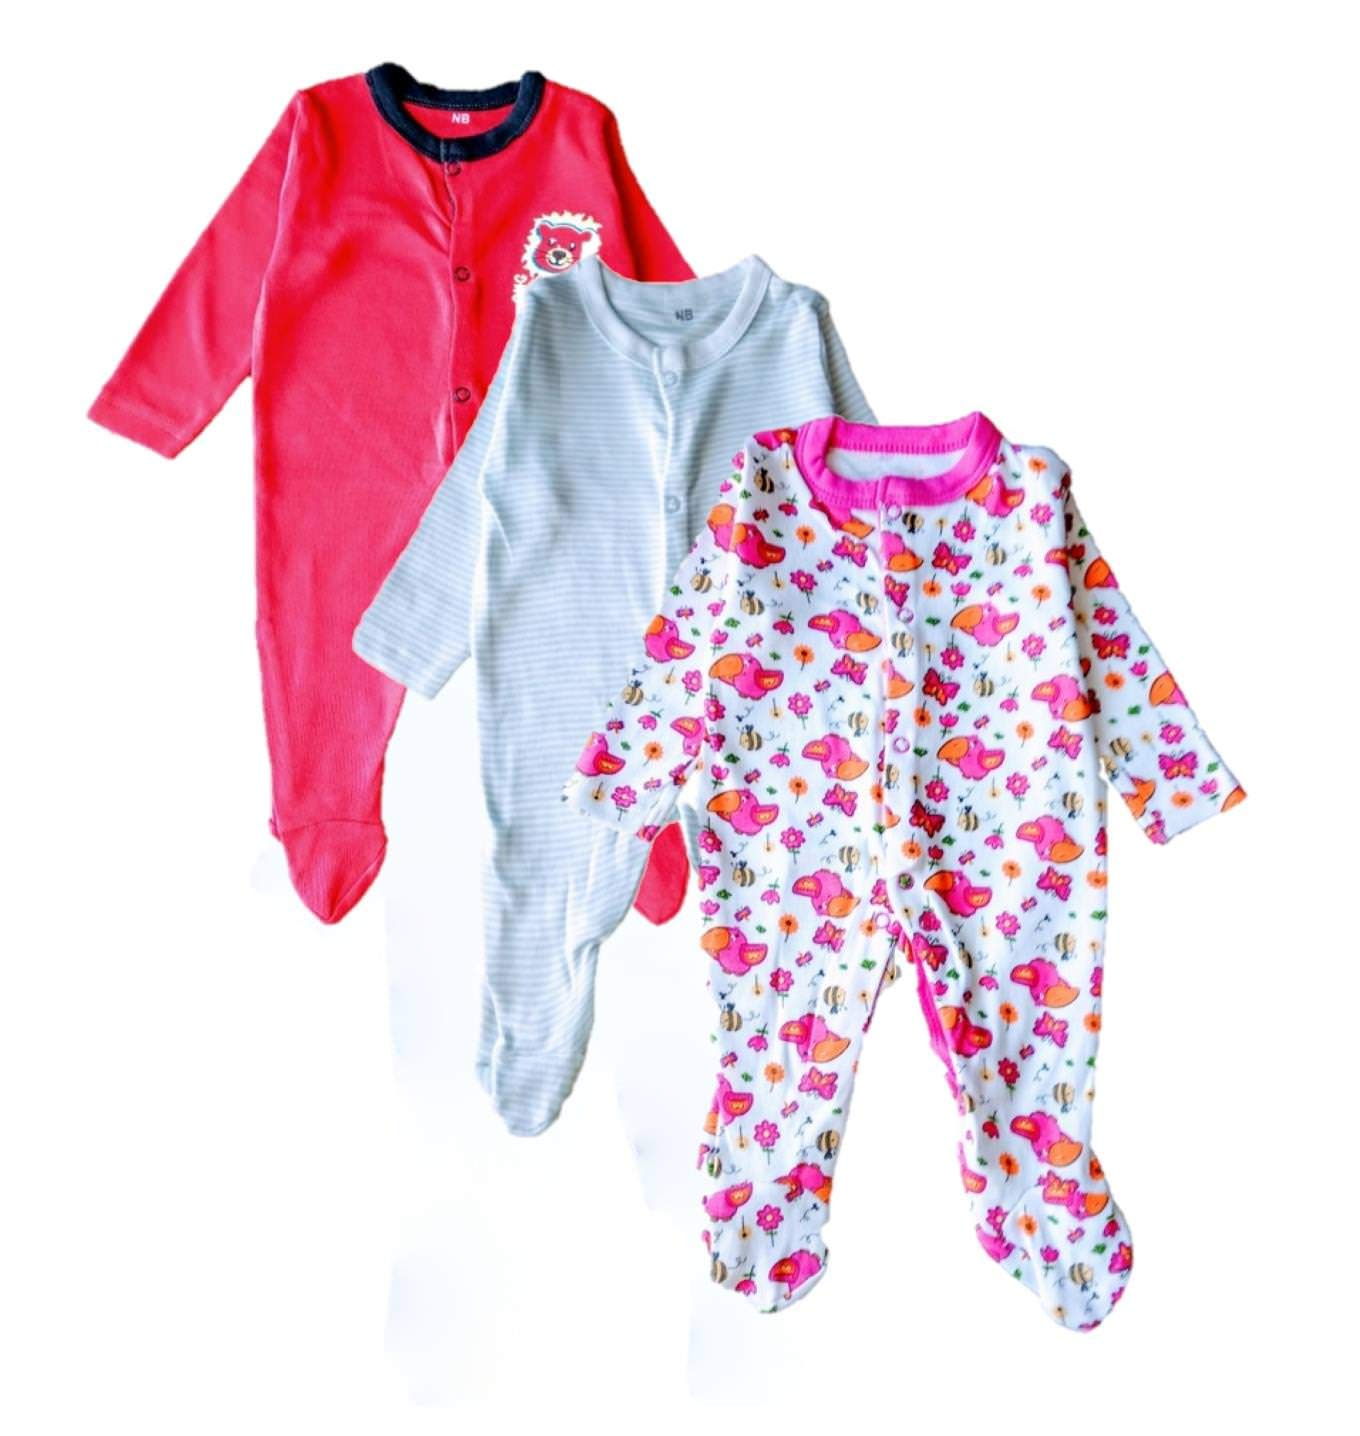 66767e733b7a Rompers for Boys n Girls 0-3 Months Baby-Suit-Dress Combo Pack of 3 ...